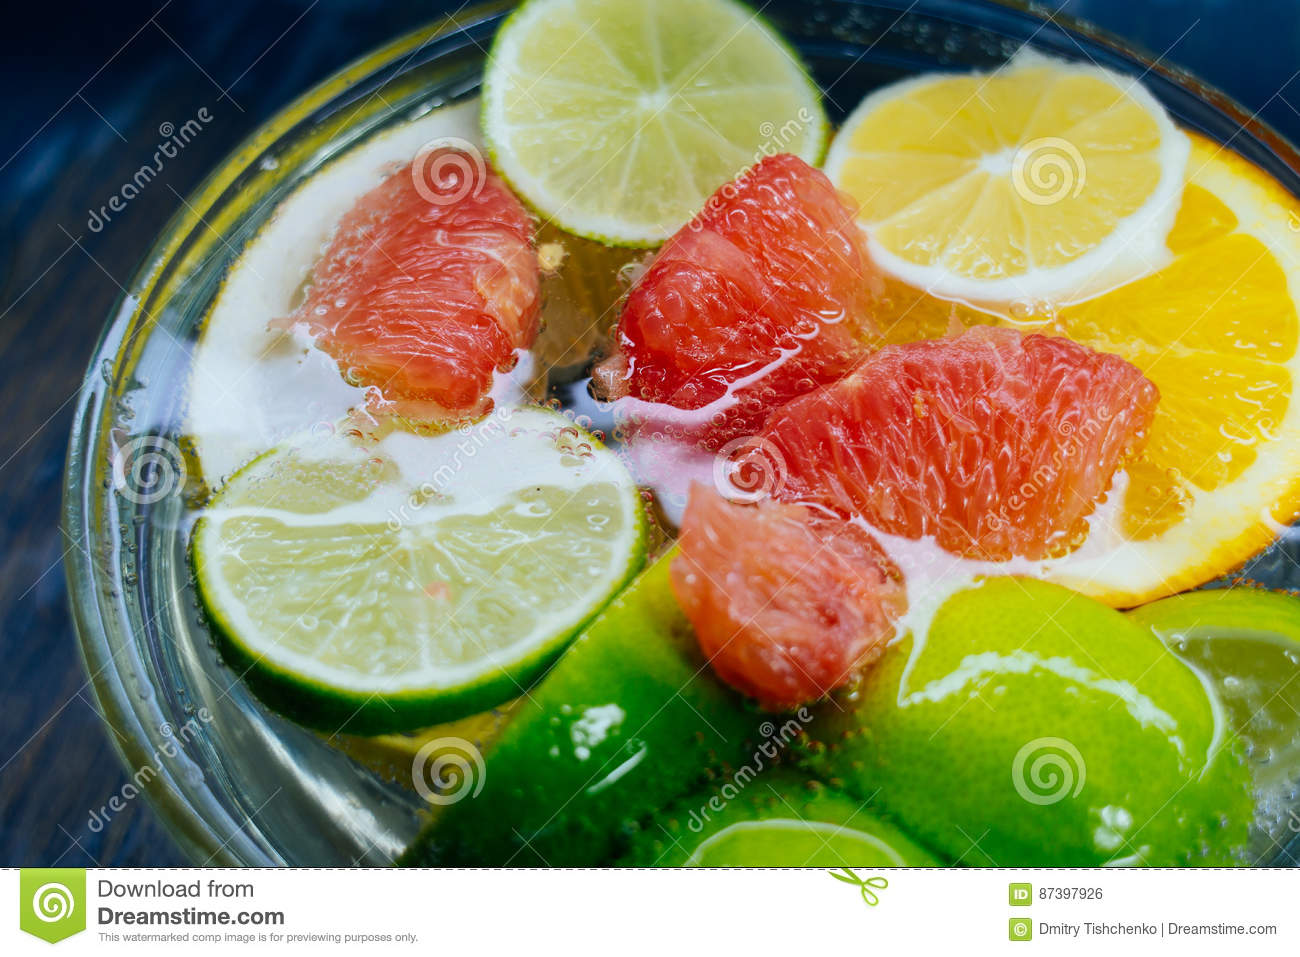 Citrus in water with bubbles in transparent plate Oranges, lemon